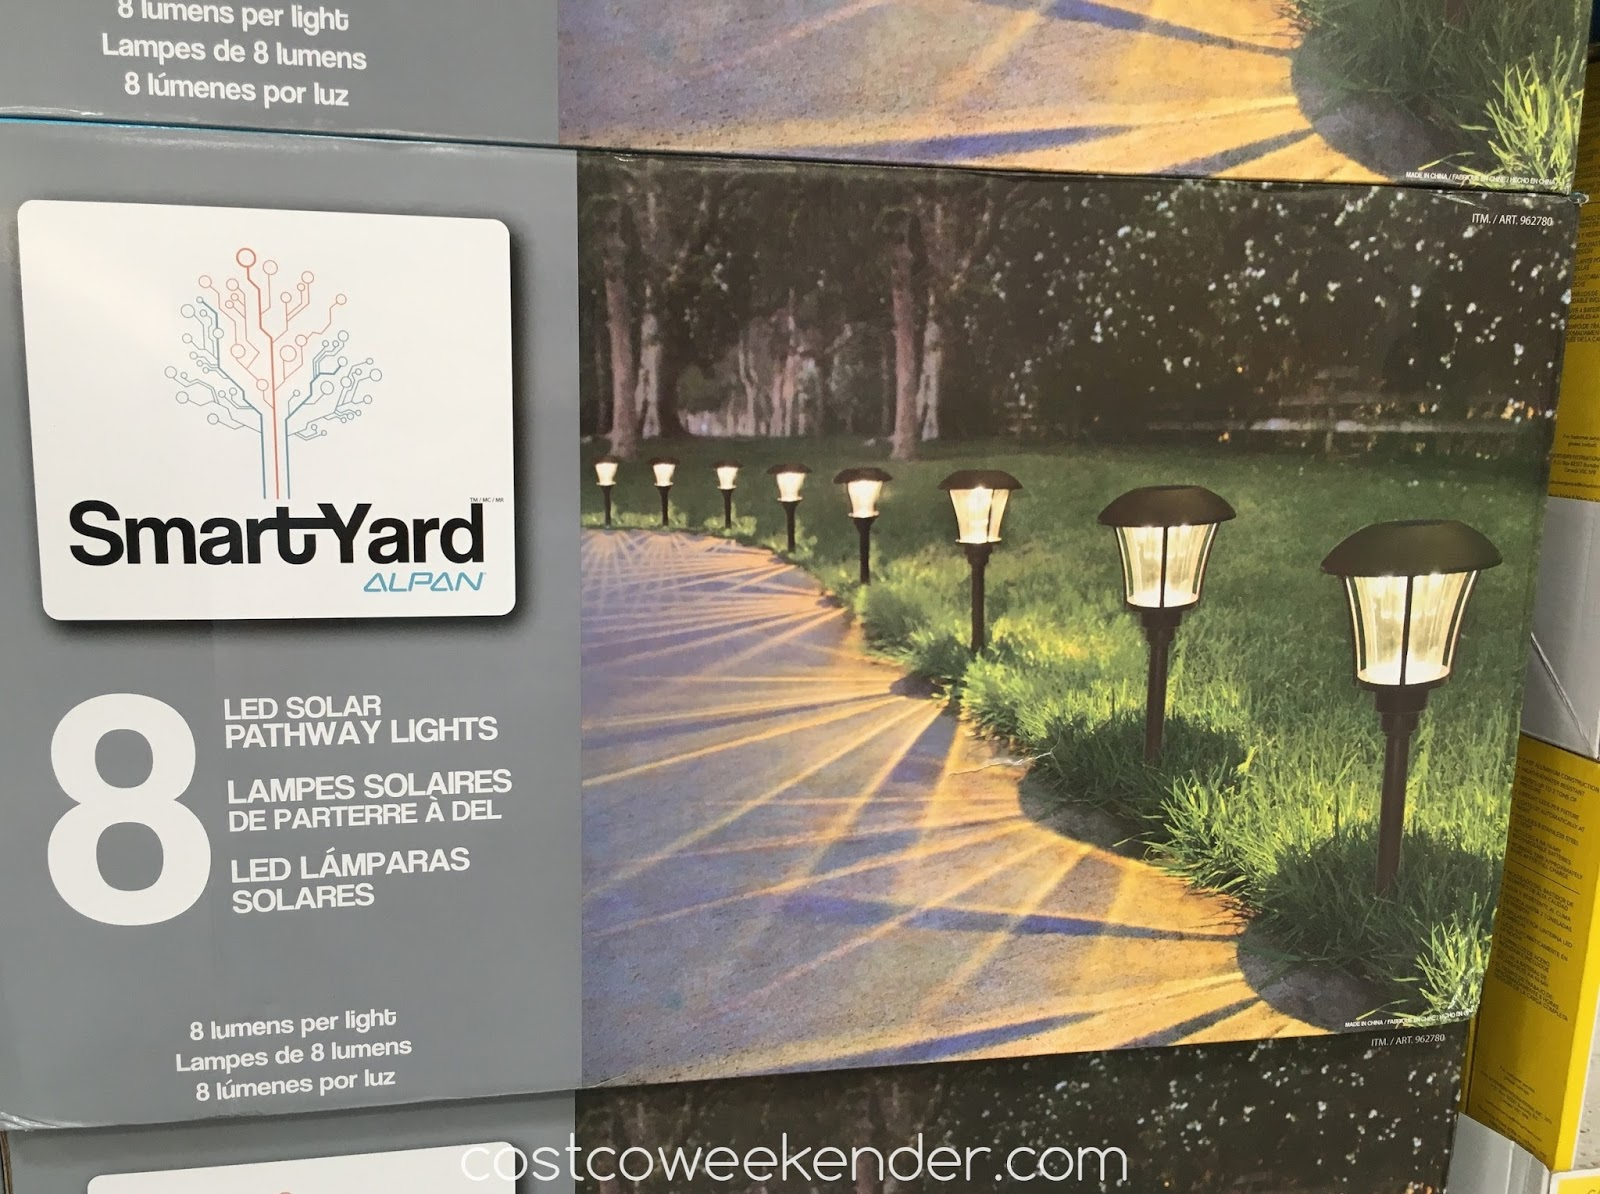 Make Your Home S Entrance Well Lit With The Smartyard Led Solar Pathway Lights Model 10192